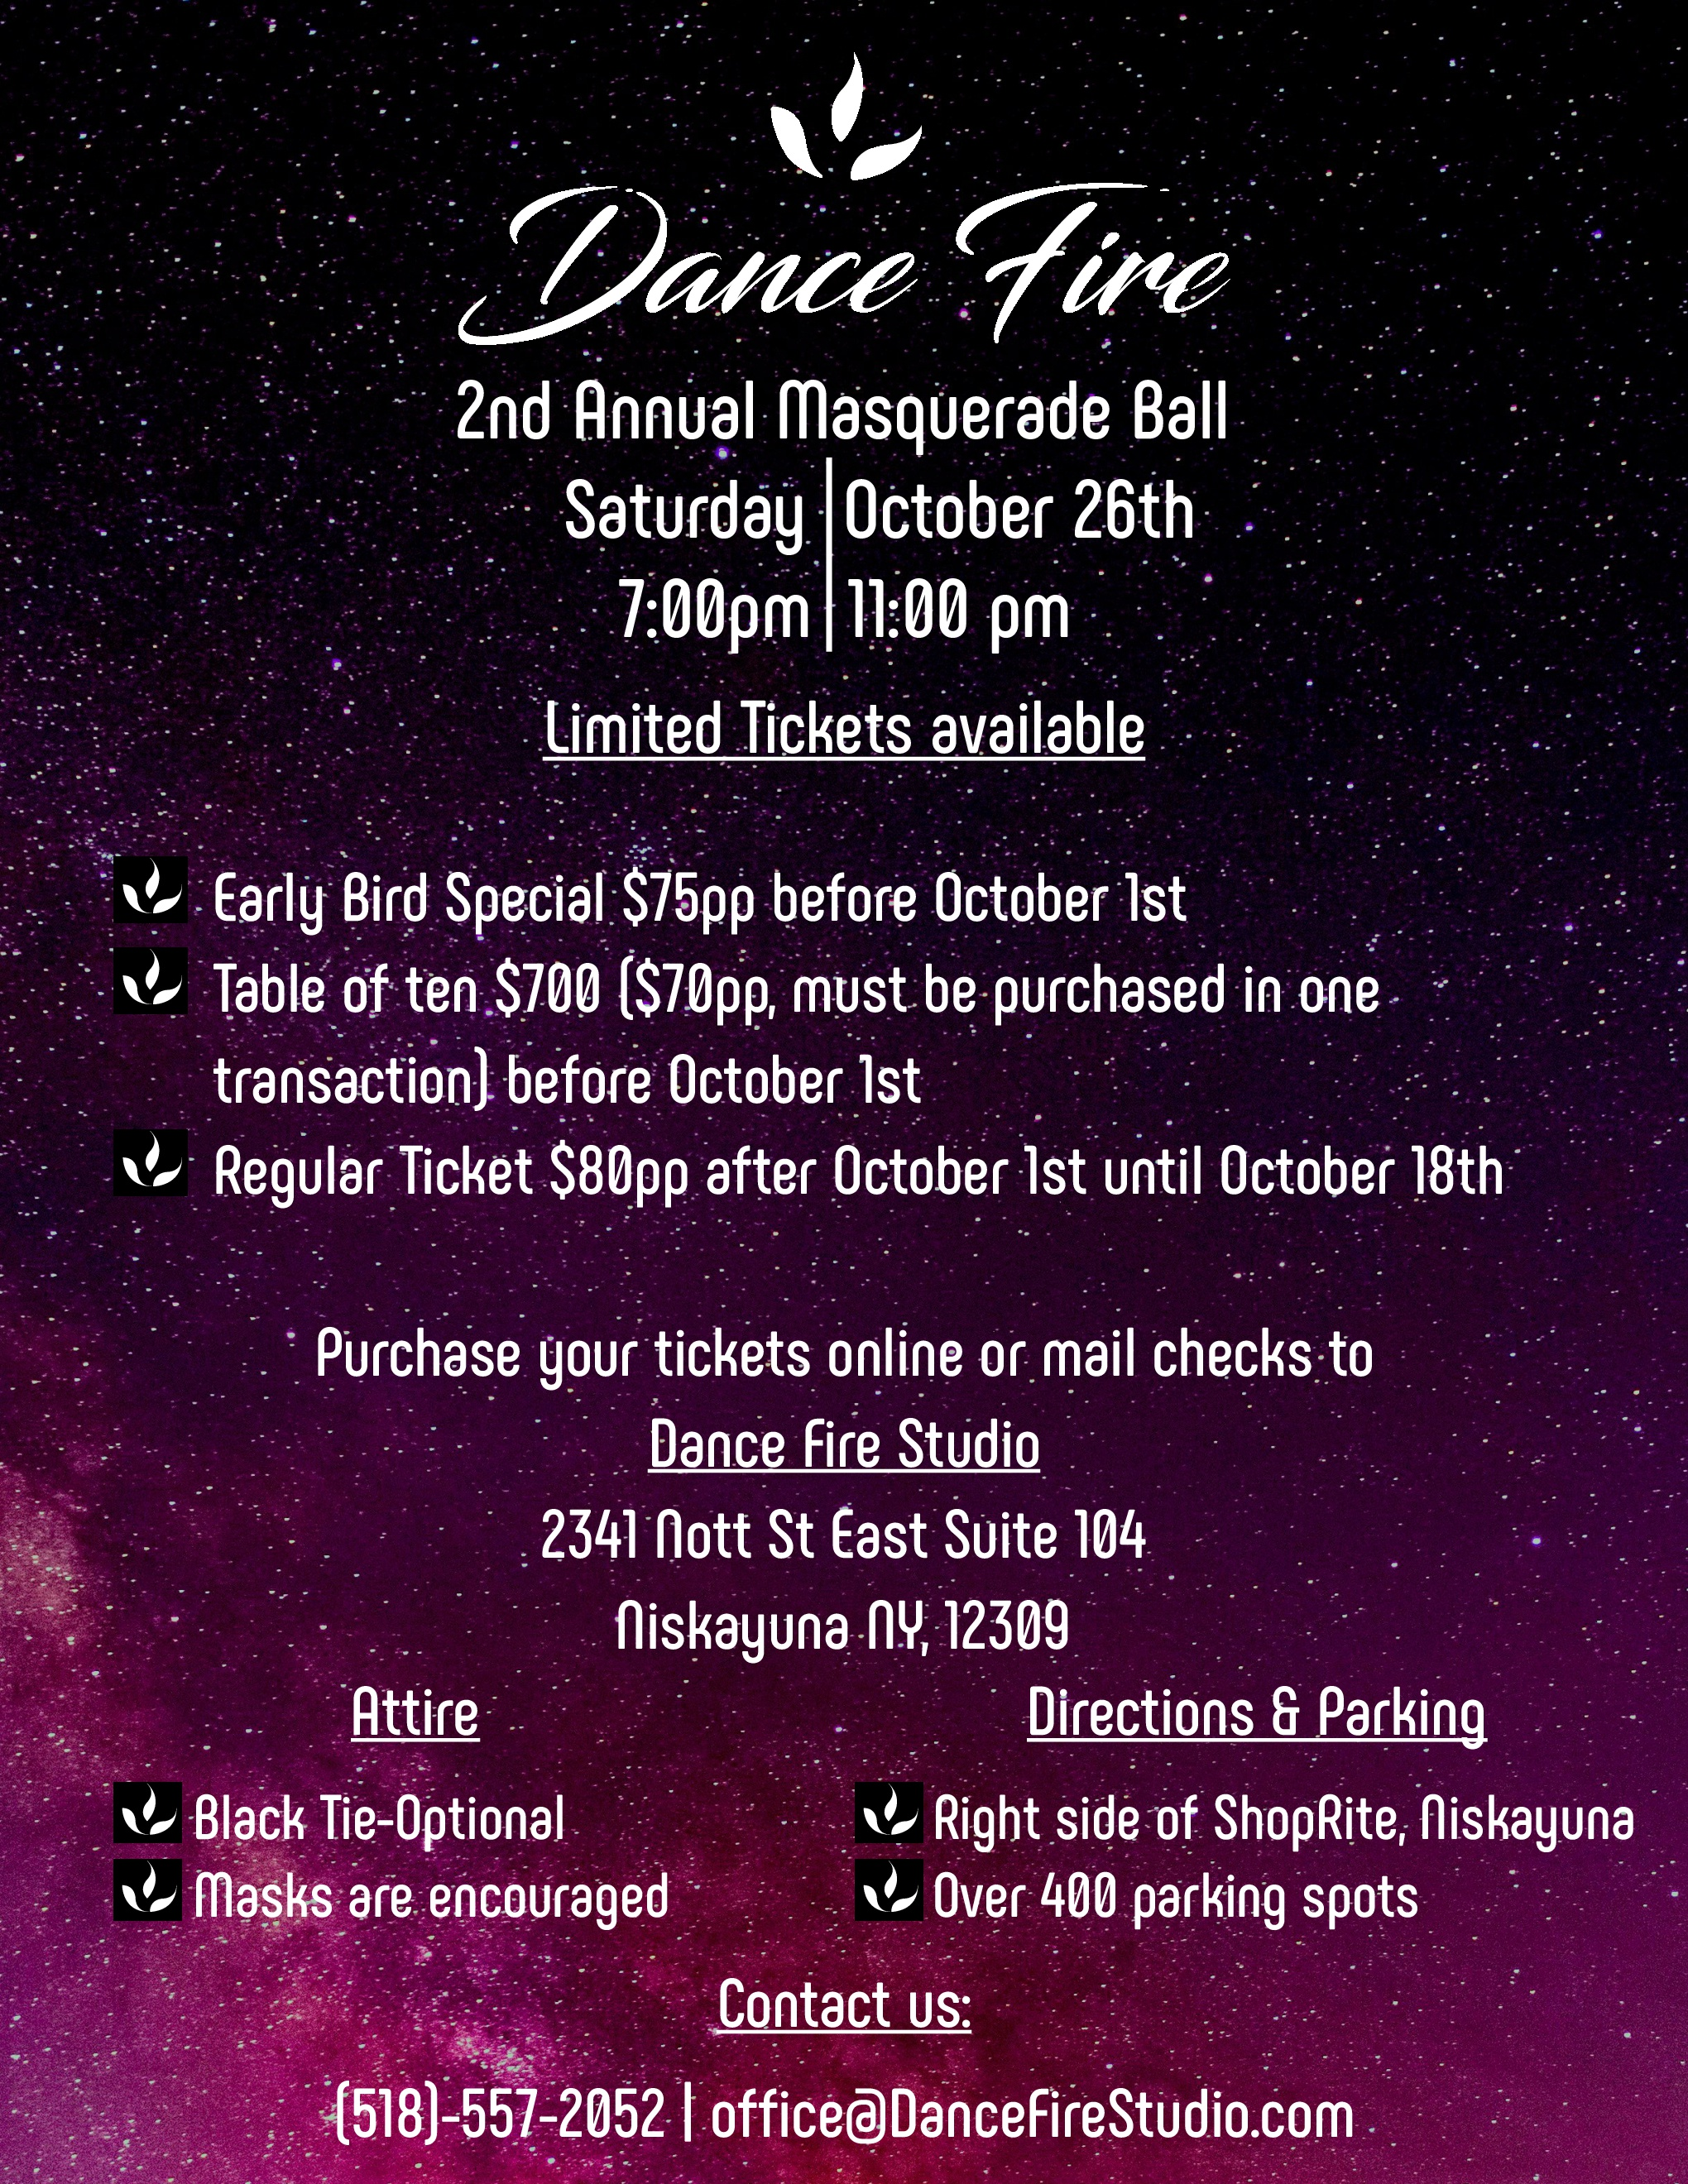 2019 Masquerade Ball Pricing.jpg